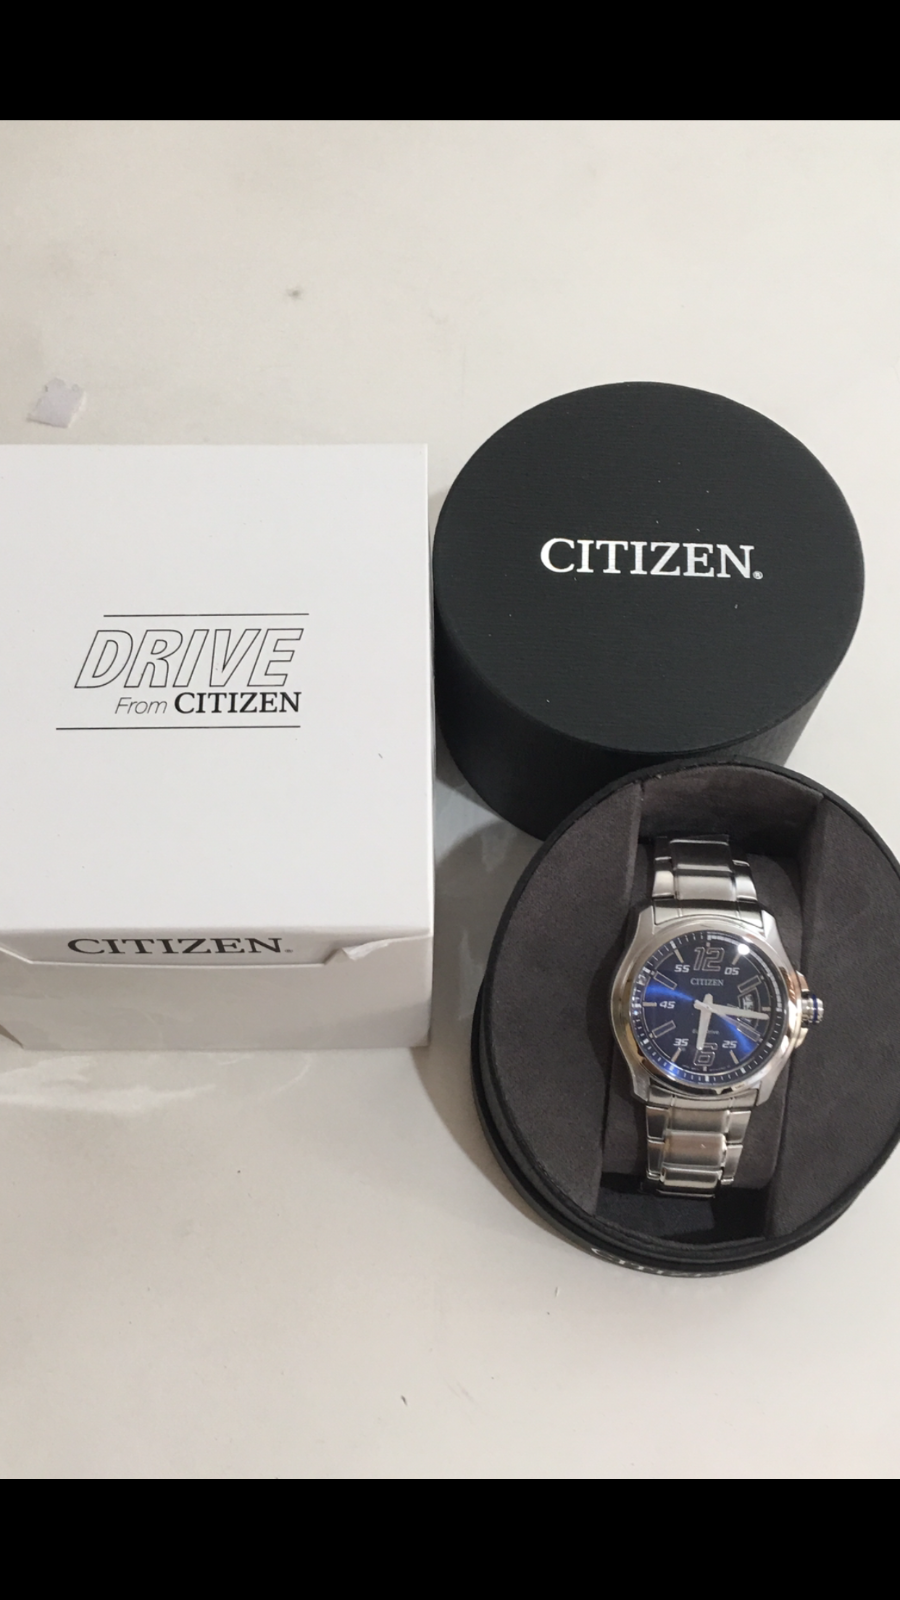 $99.00 - CITIZEN EOC DRIVE BLUE STAINLESS STEEL MEN'S WATCH Model- AW1350-83M